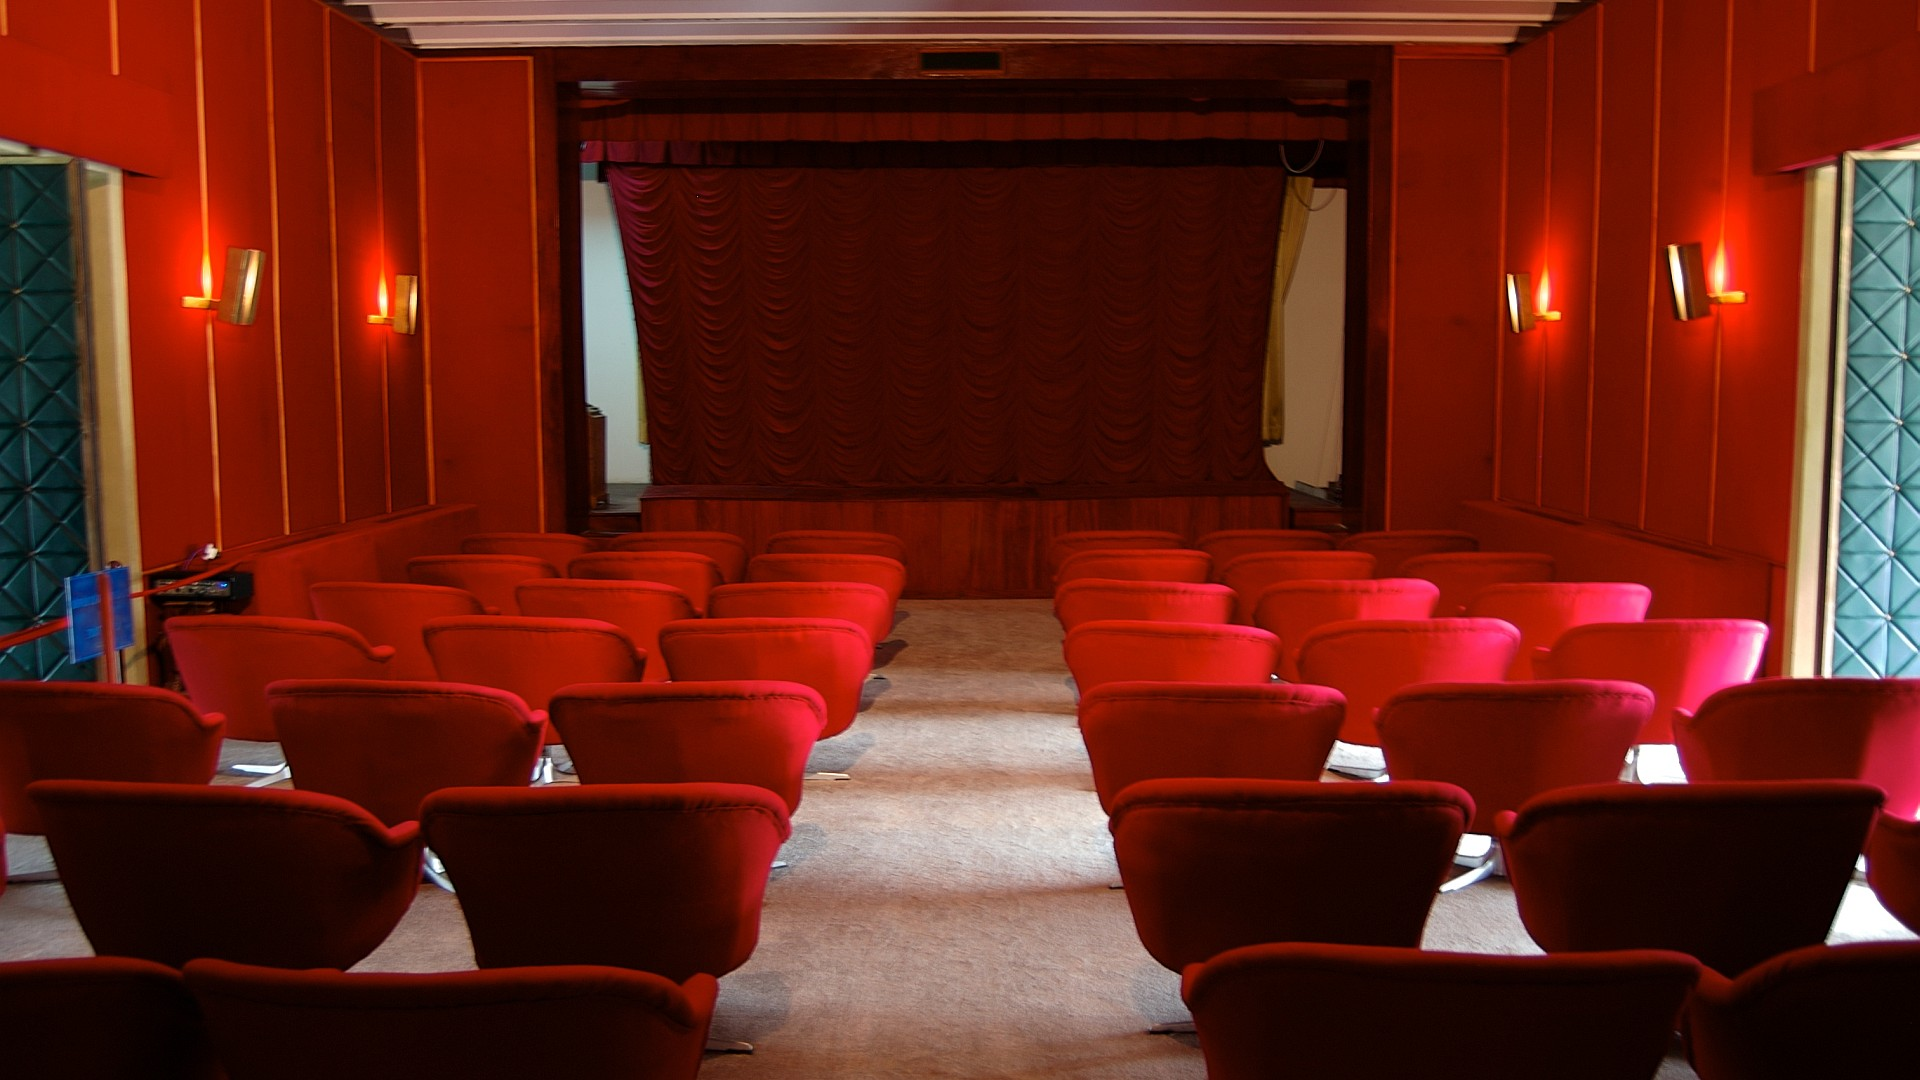 Movie theater wallpaper wallpapersafari for Wallpaper hd home movie